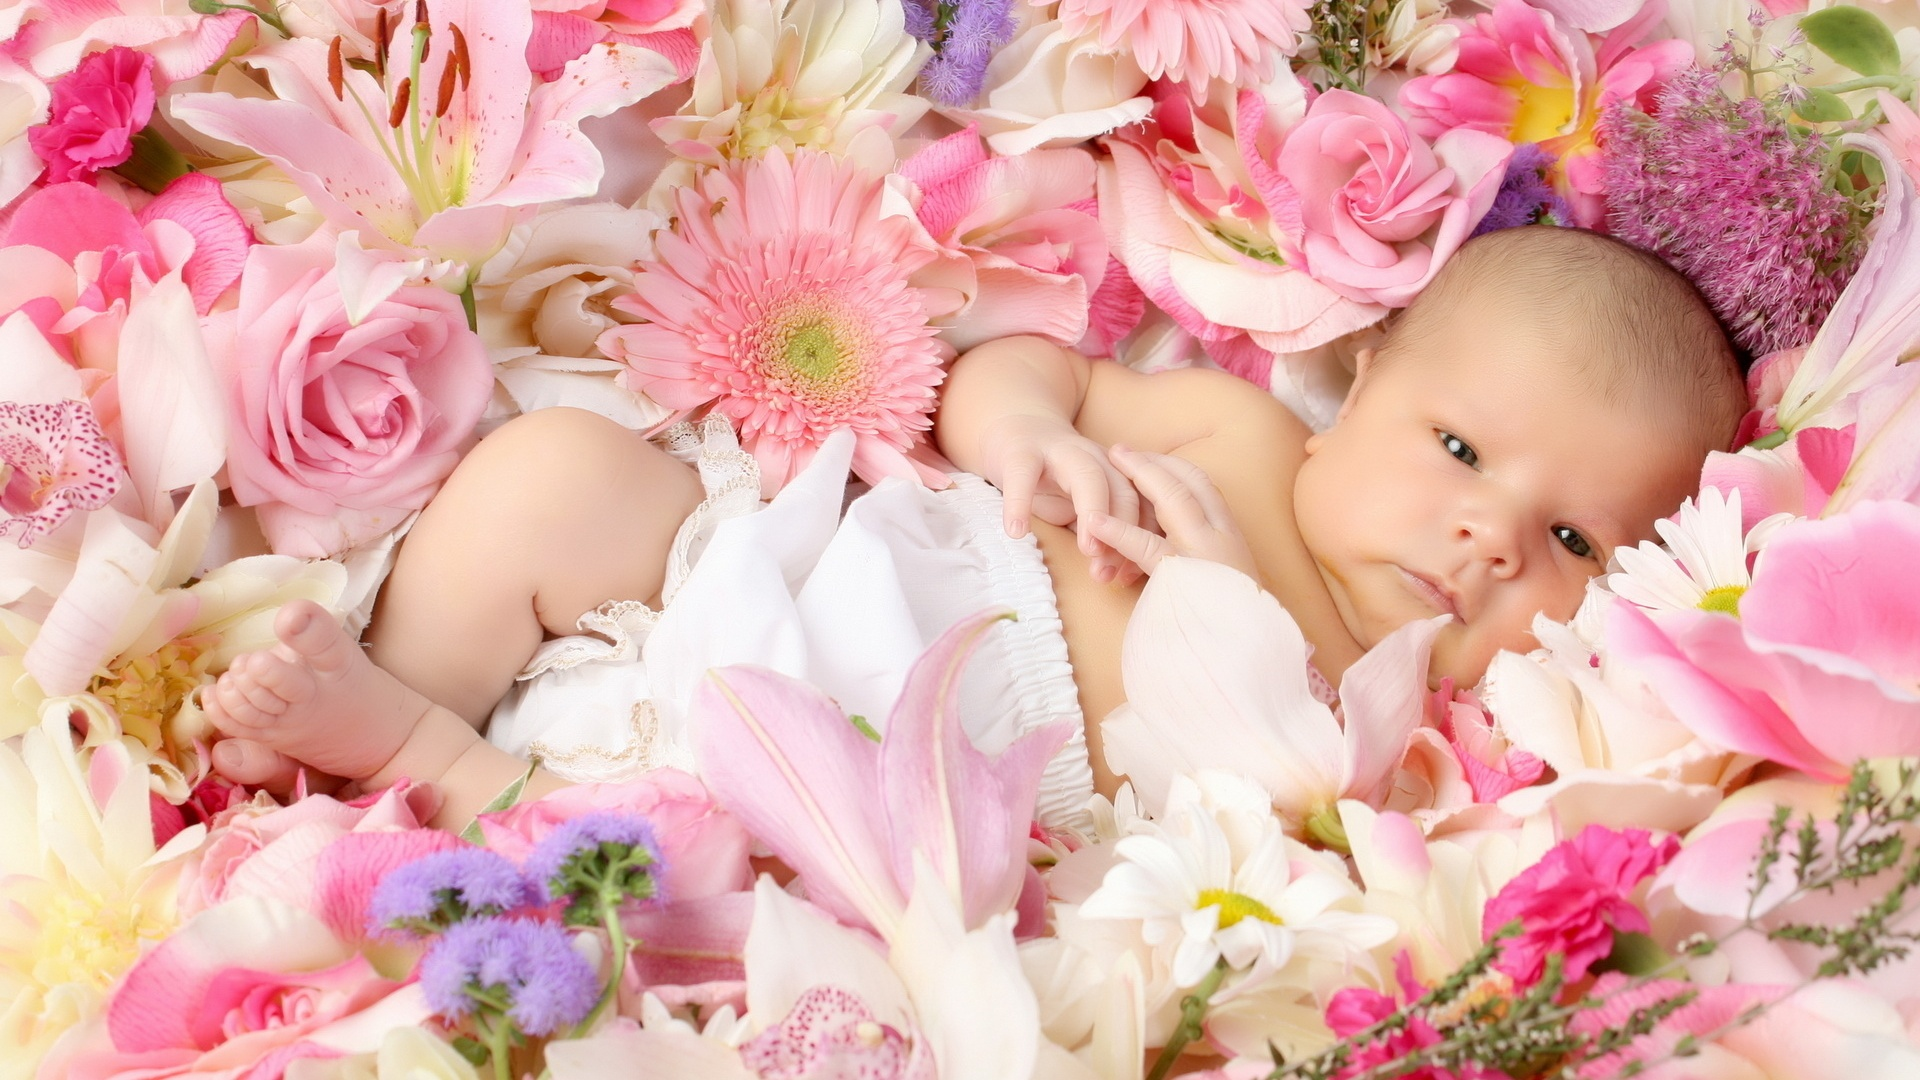 Baby With Flower Wallpaper